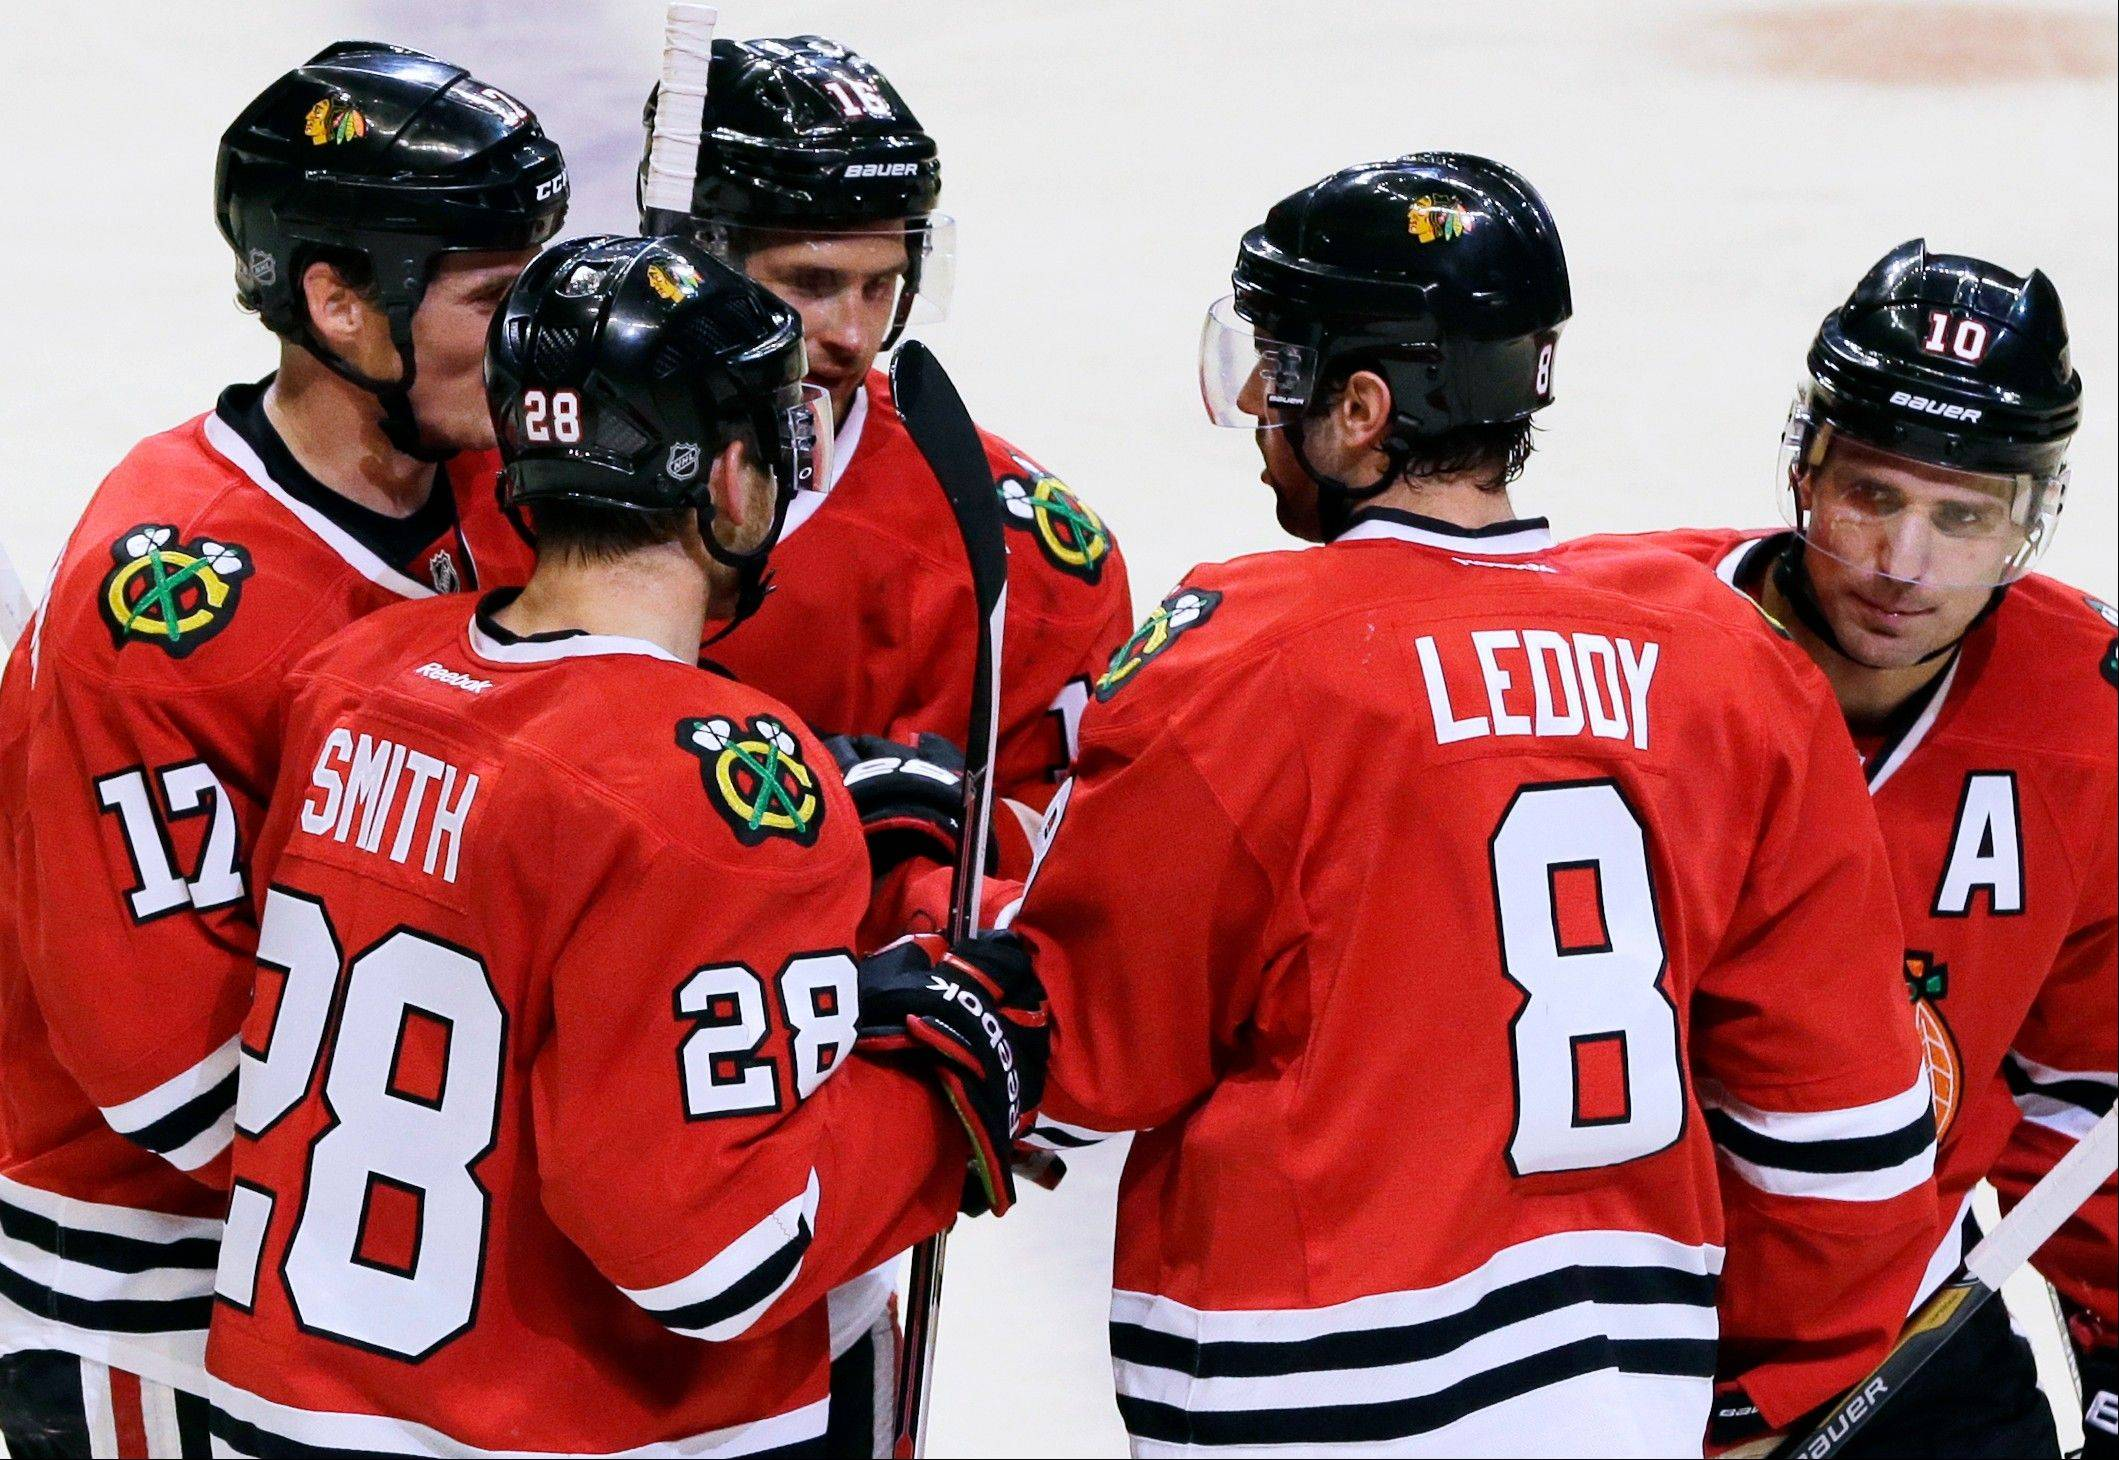 Nick Leddy celebrates with his Blackhawks teammates after scoring his second goal during the second period Saturday night against the Capitals at the United Center.